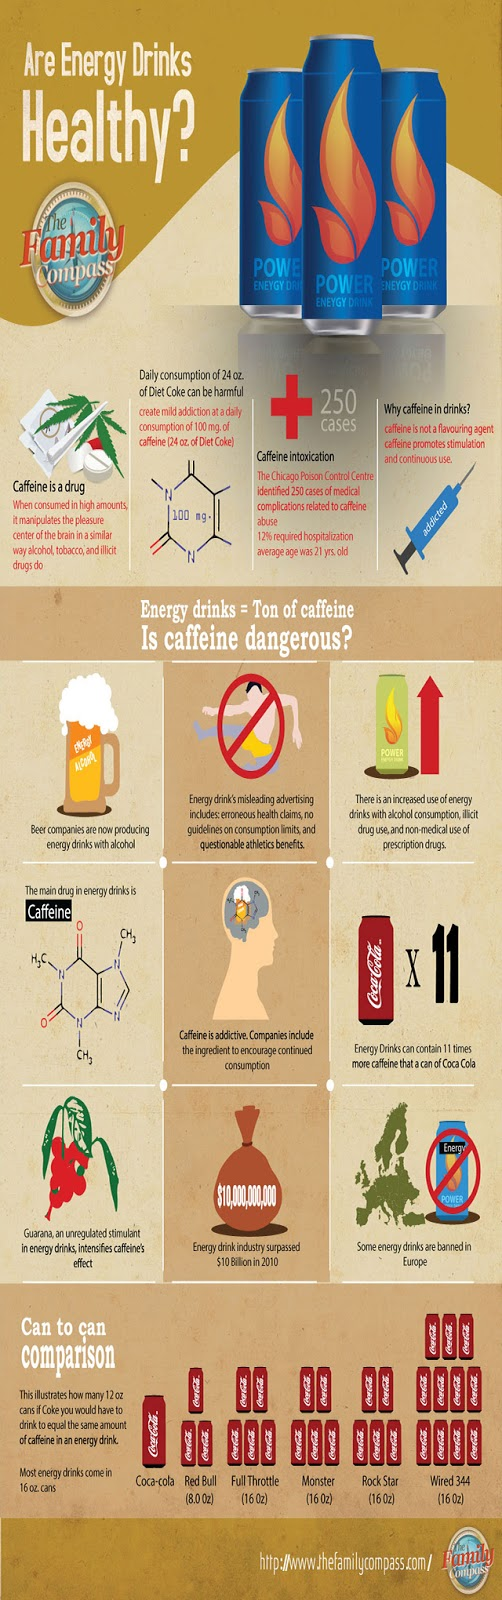 10d96-energy_drinks_infographic1